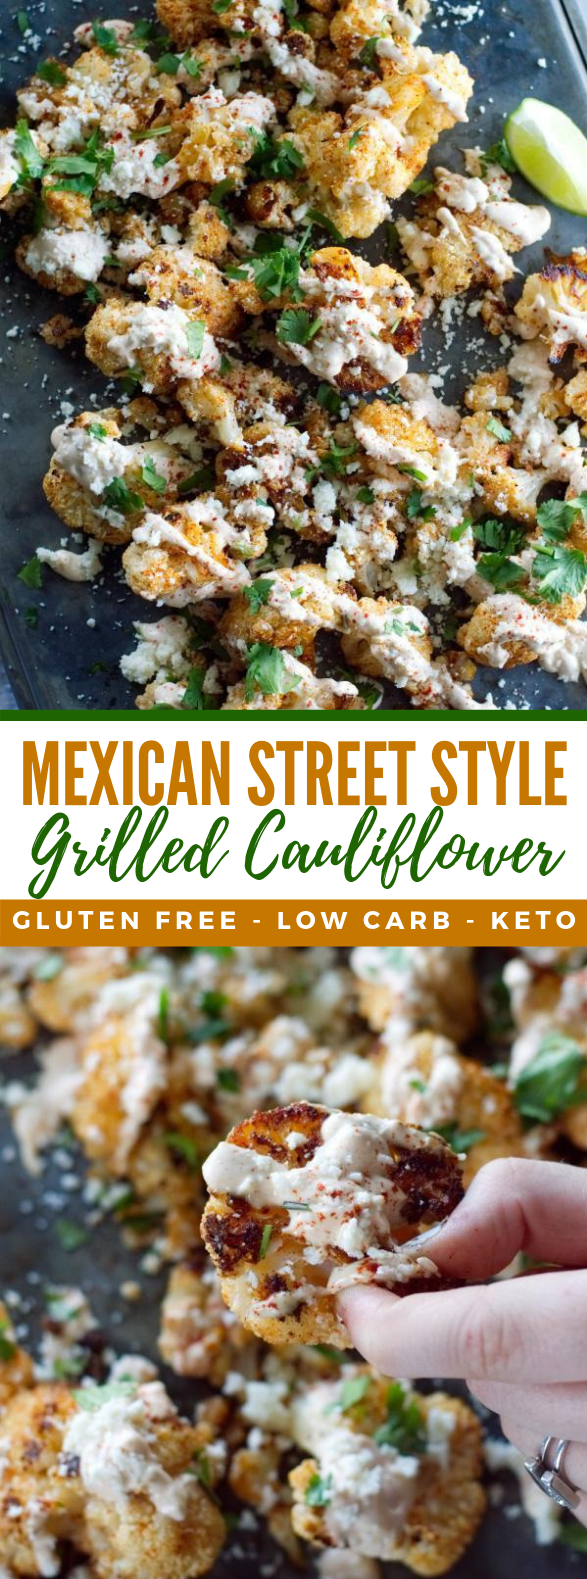 MEXICAN STREET STYLE GRILLED CAULIFLOWER #ketodiet #lowcarb